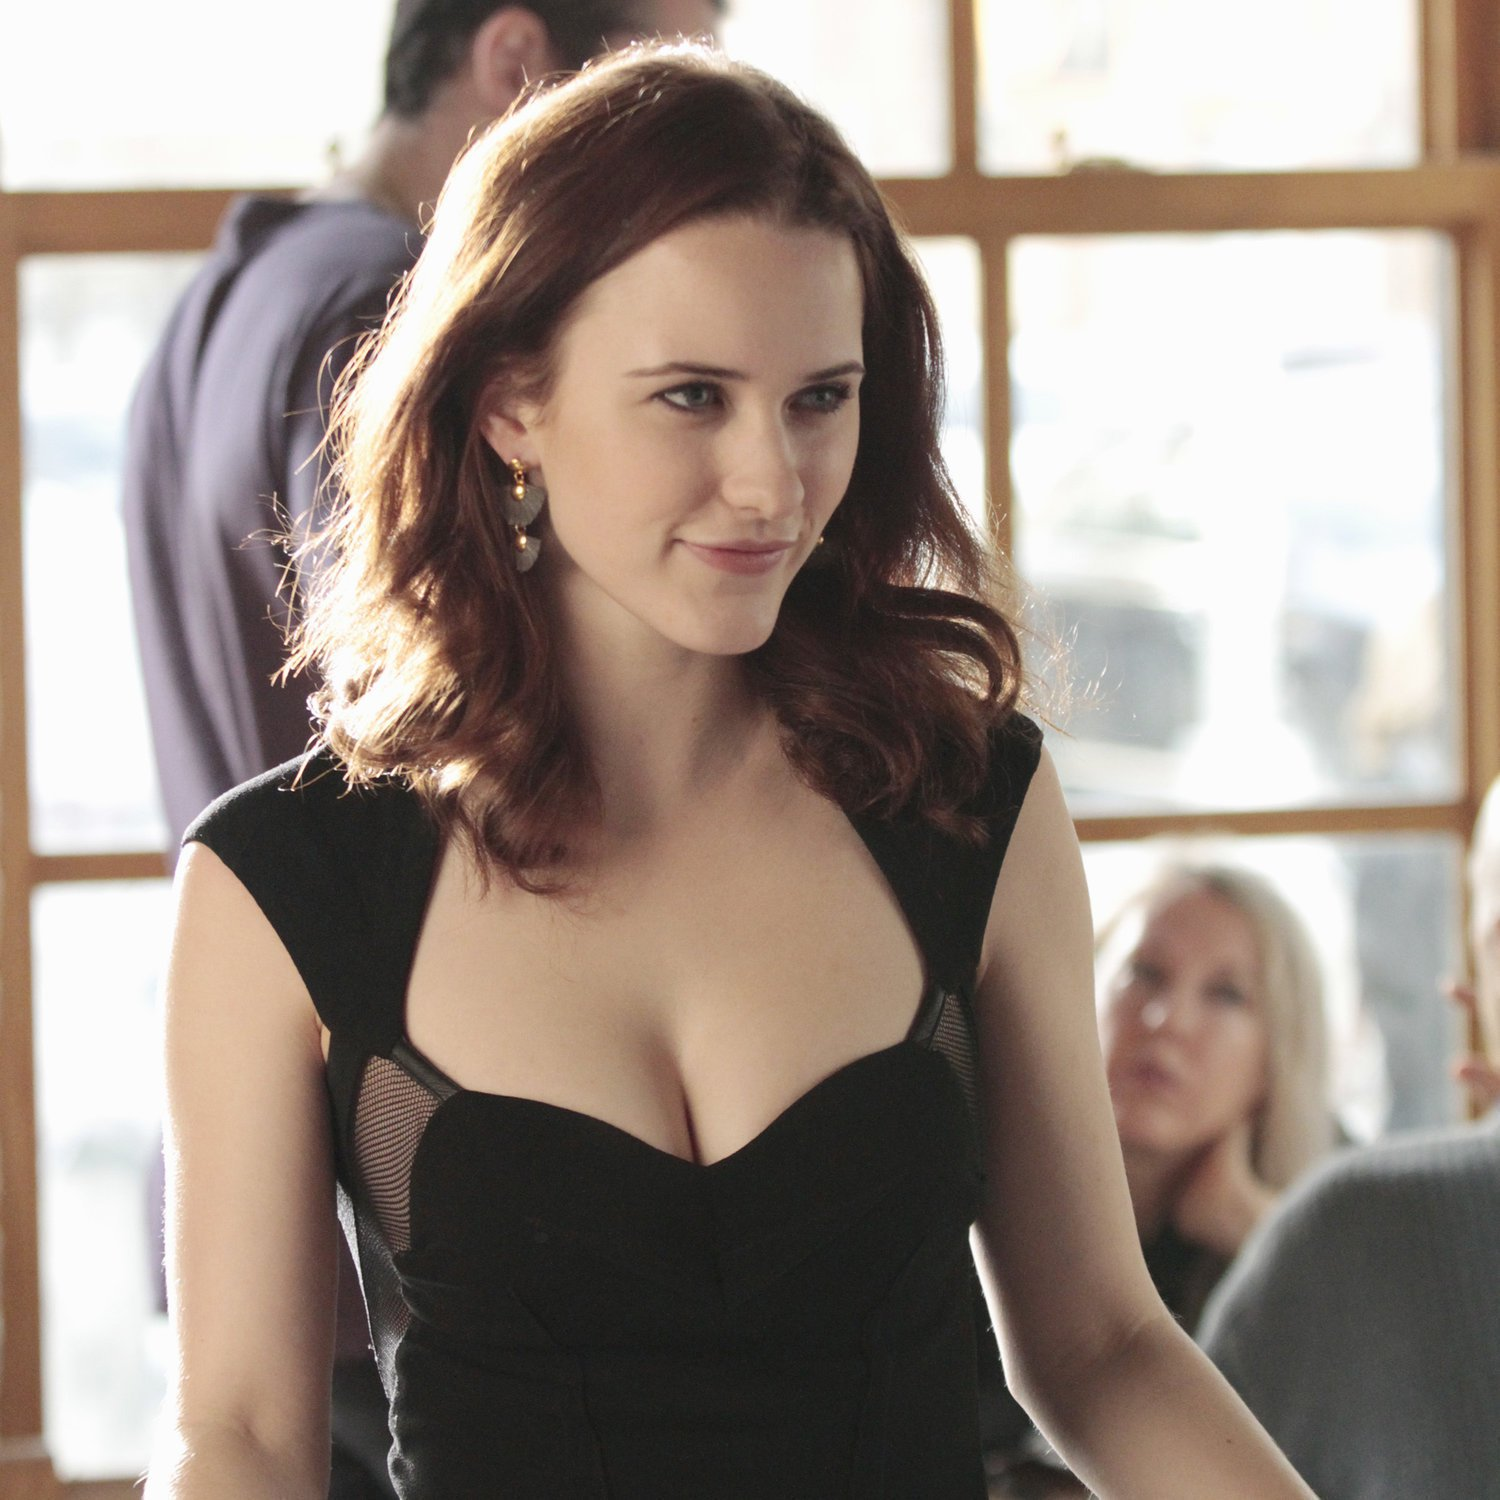 70+ Hot Pictures Of Rachel Brosnahan Are Just Too Hot To